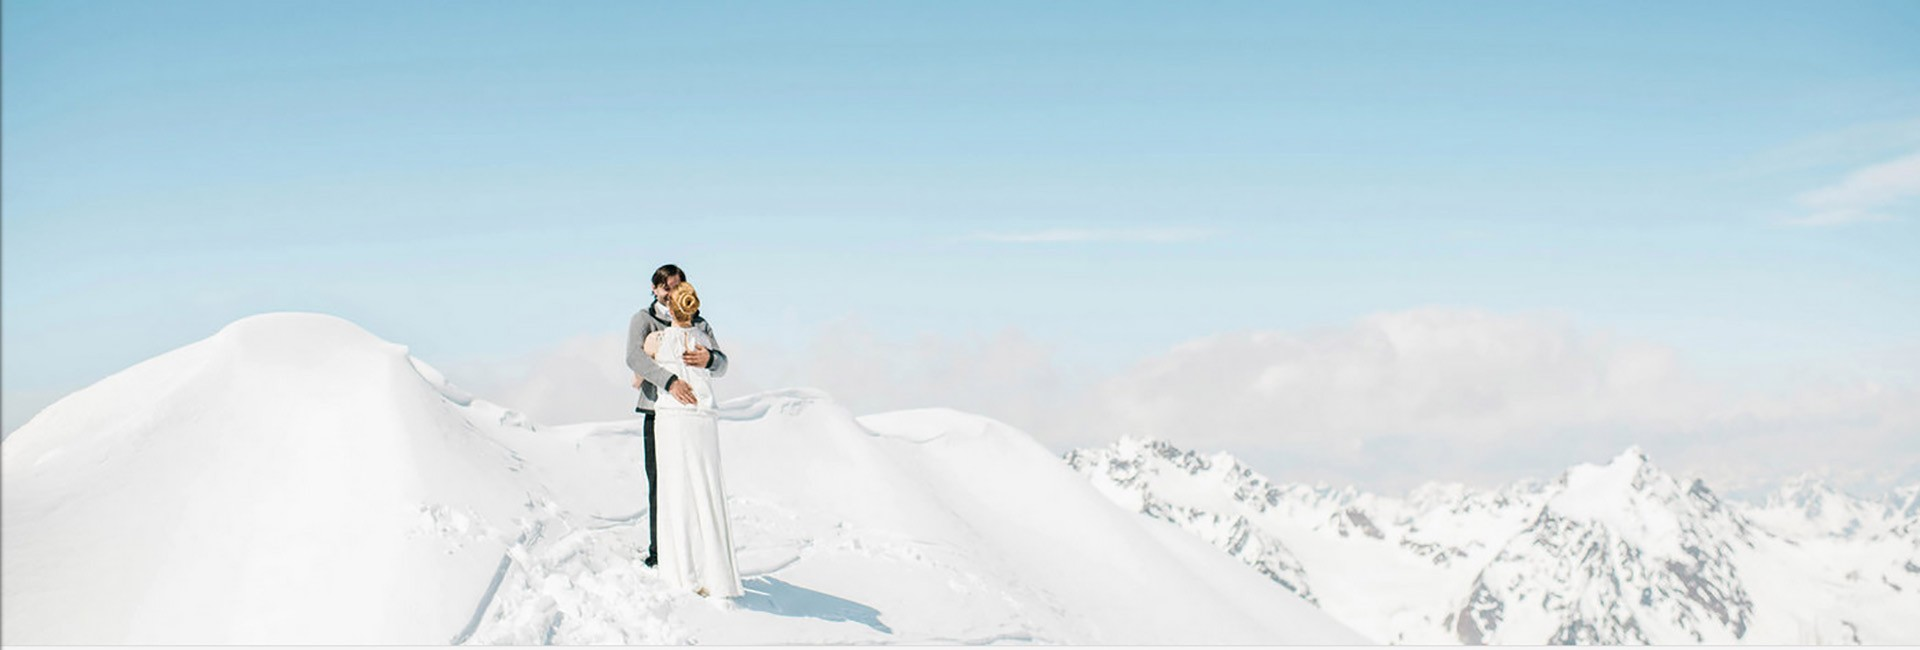 Wedding Ceremony at 3440 meters on Pitztal Glacier